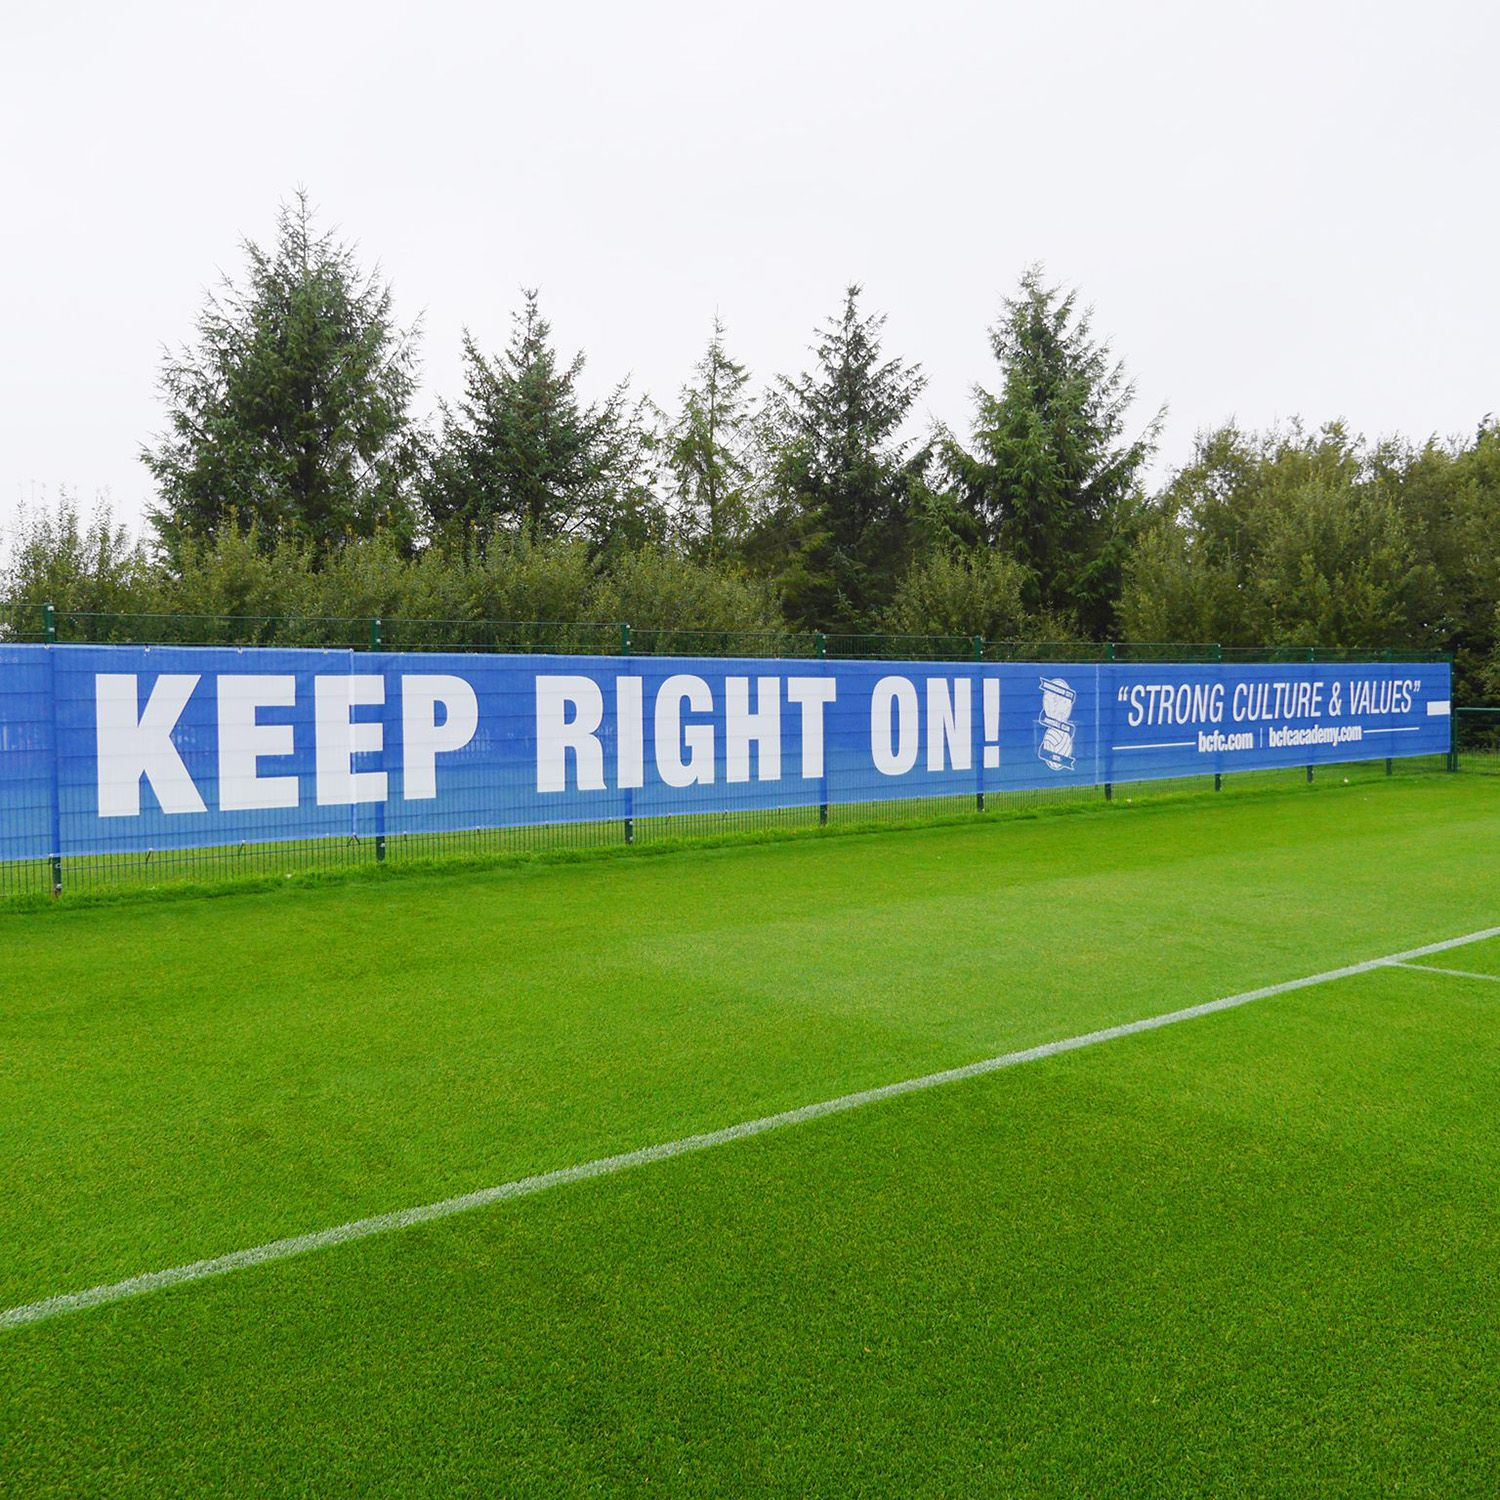 These Mesh Pvc Banners Were Printed And Installed At Birmingham City Football Clubs Training Ground By Http Www Printdesigns Co Pvc Banner Mesh Banner Banner